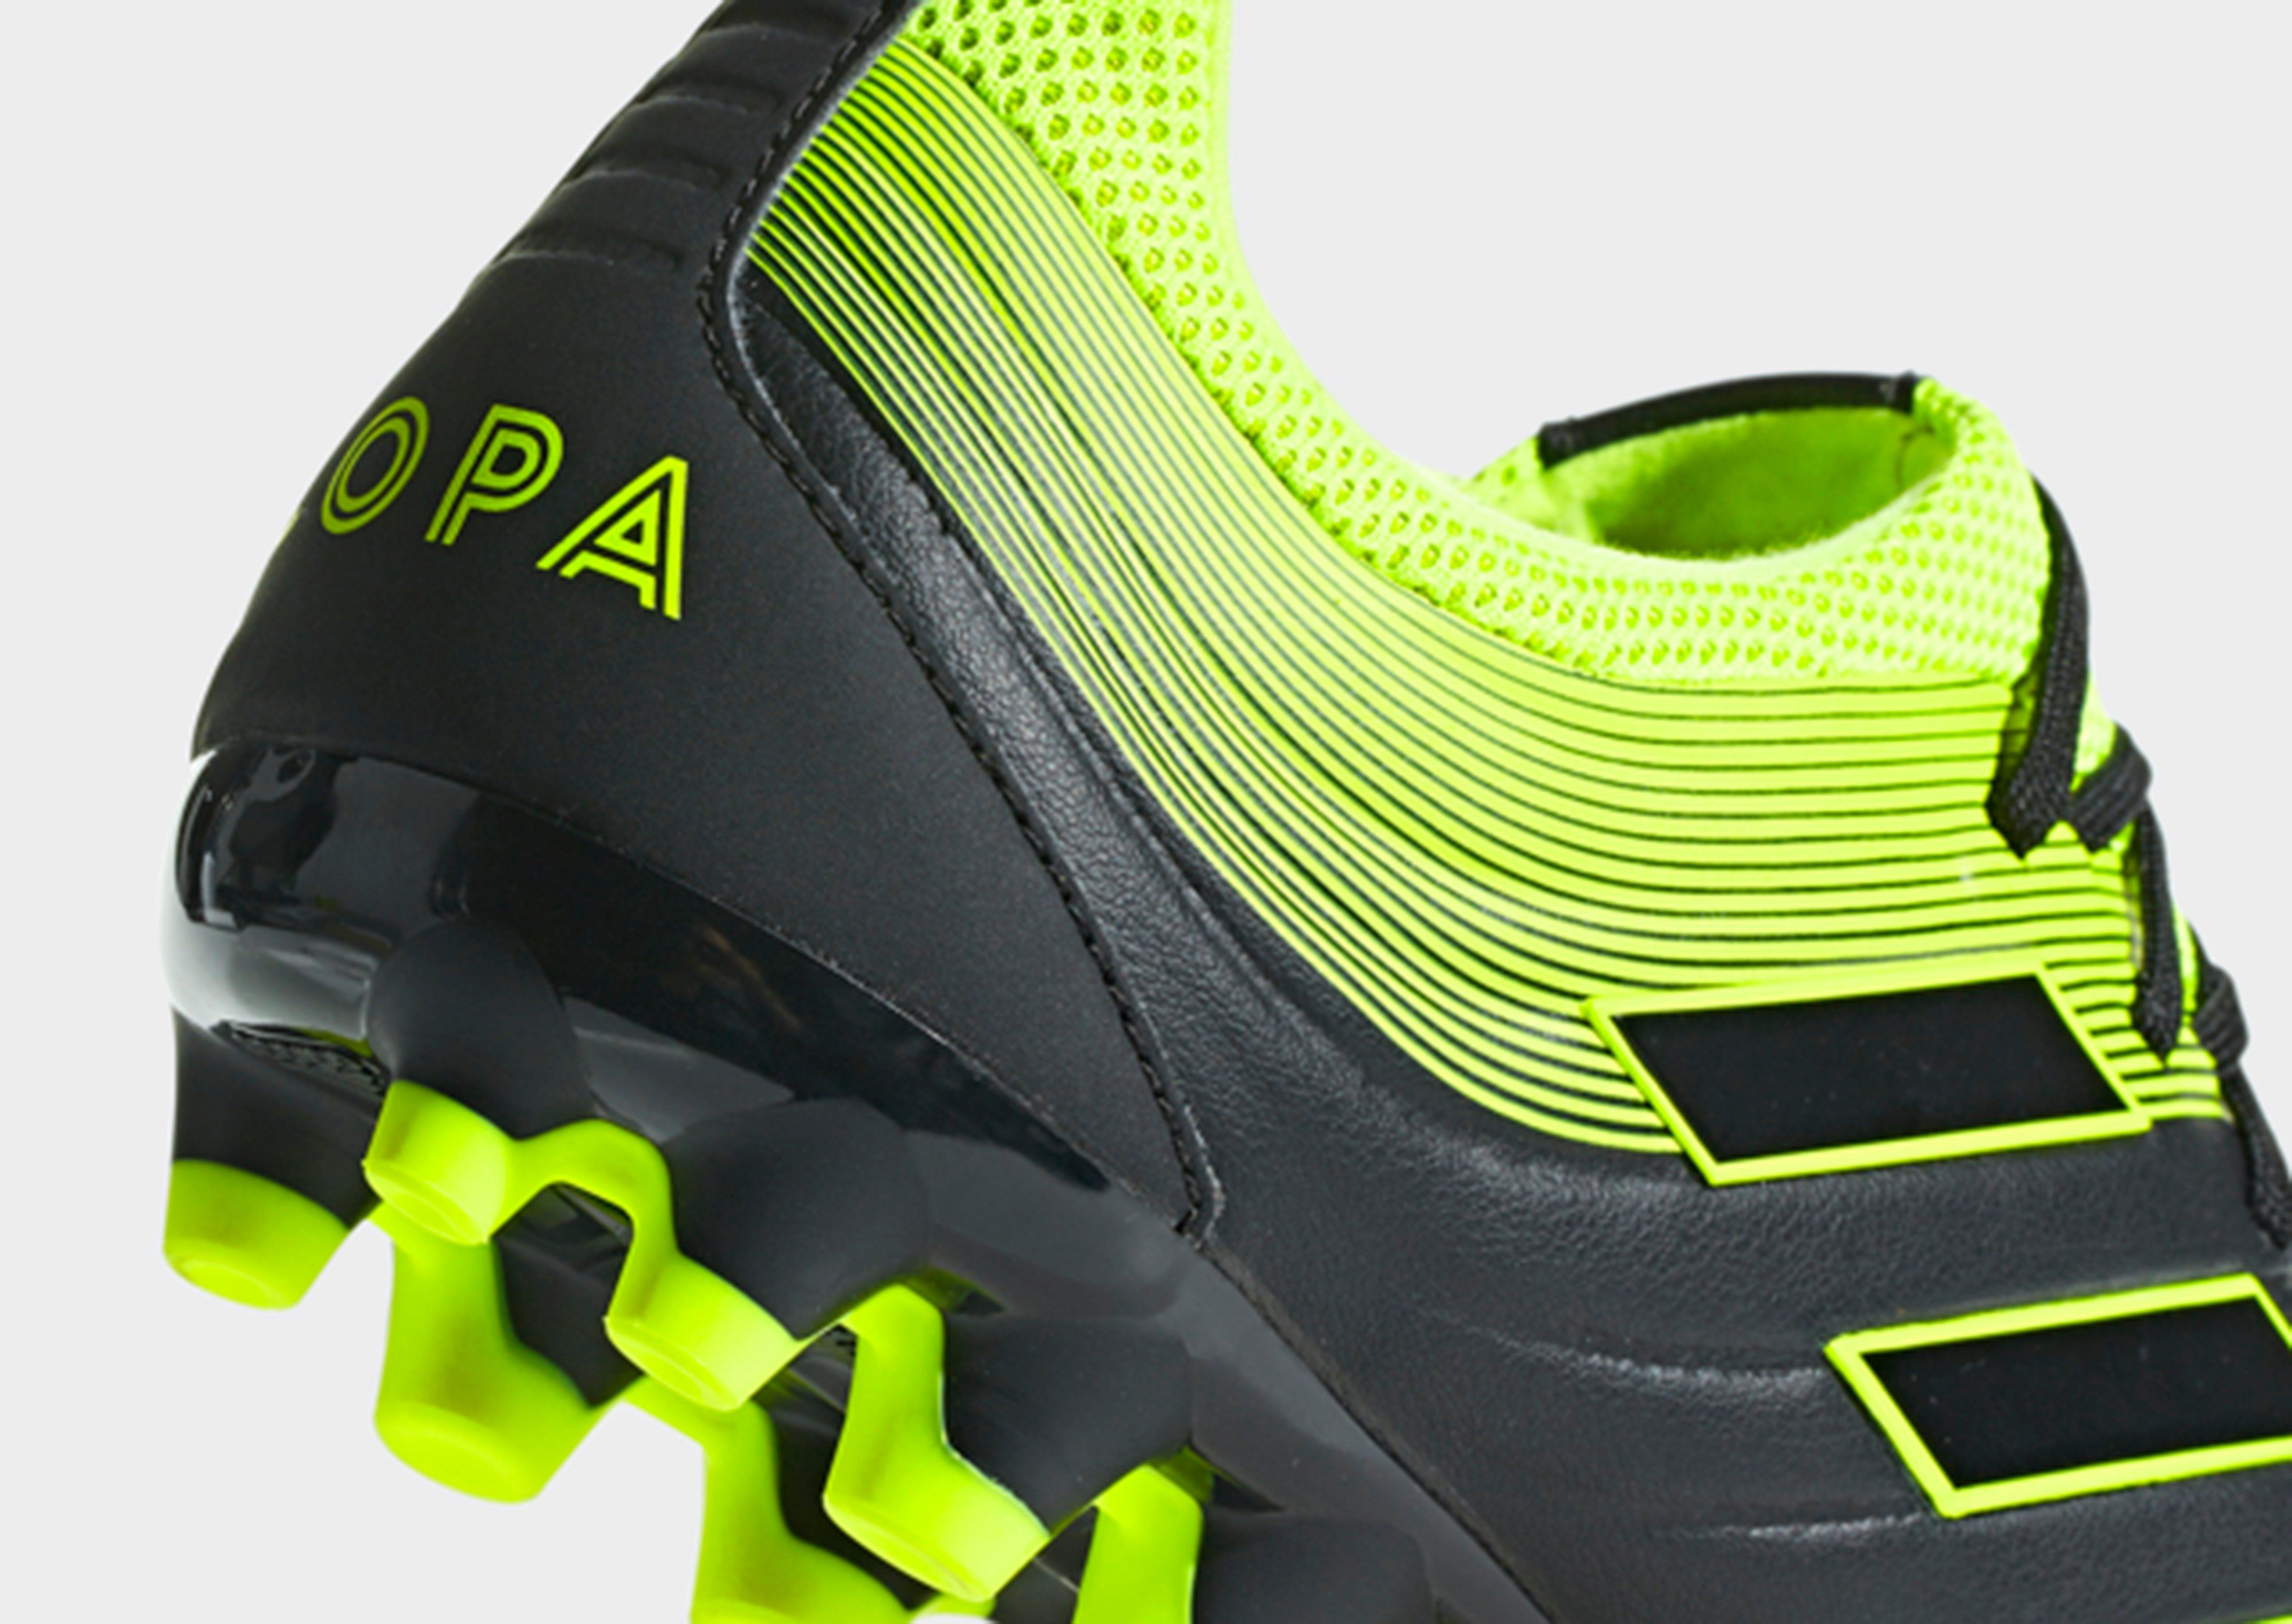 ADIDAS Copa 19.3 Artificial Grass Boots